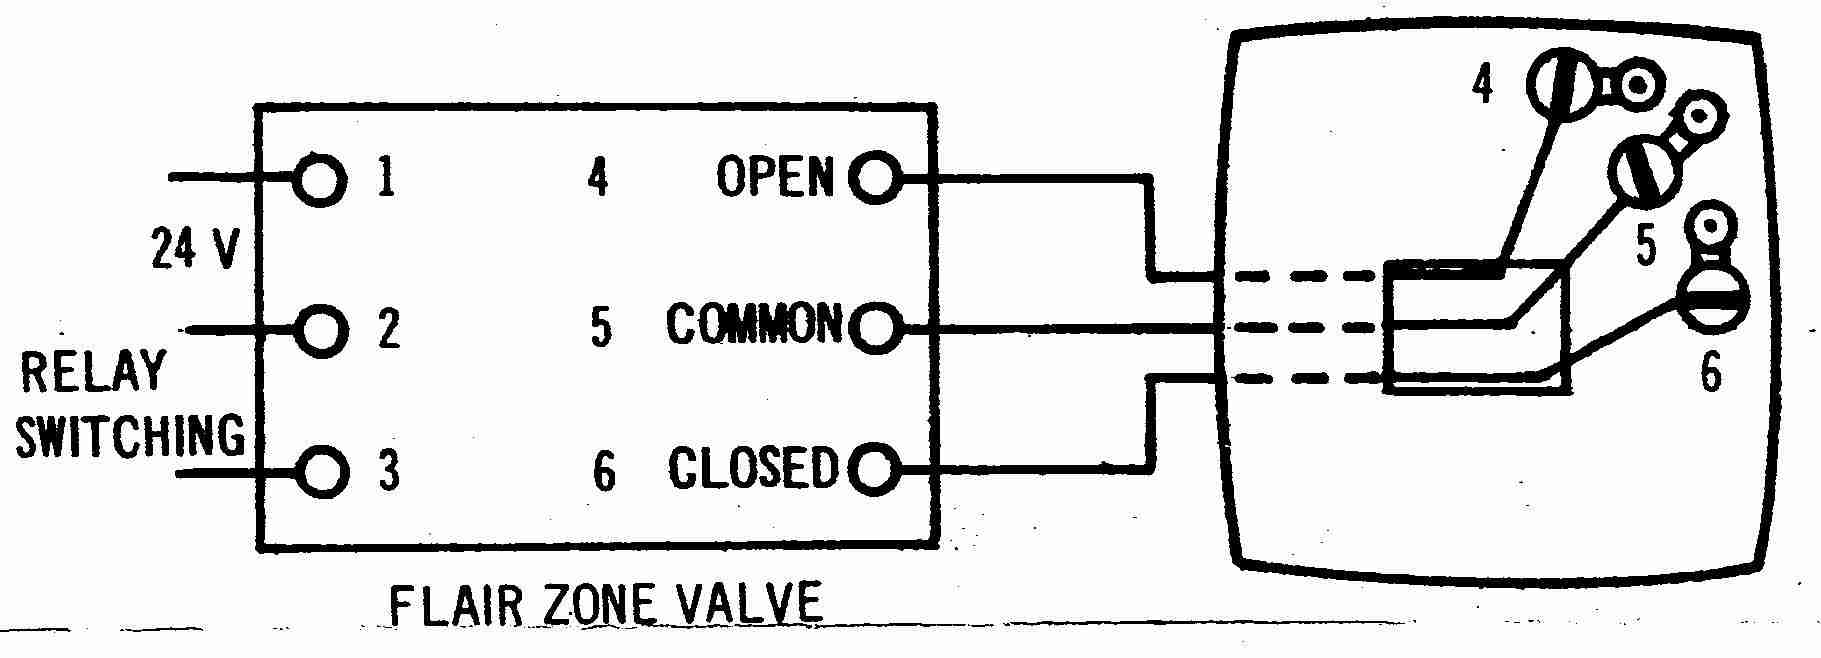 Flair3w_001_DJFc2 zone valve wiring installation & instructions guide to heating zone valve wiring diagram at virtualis.co